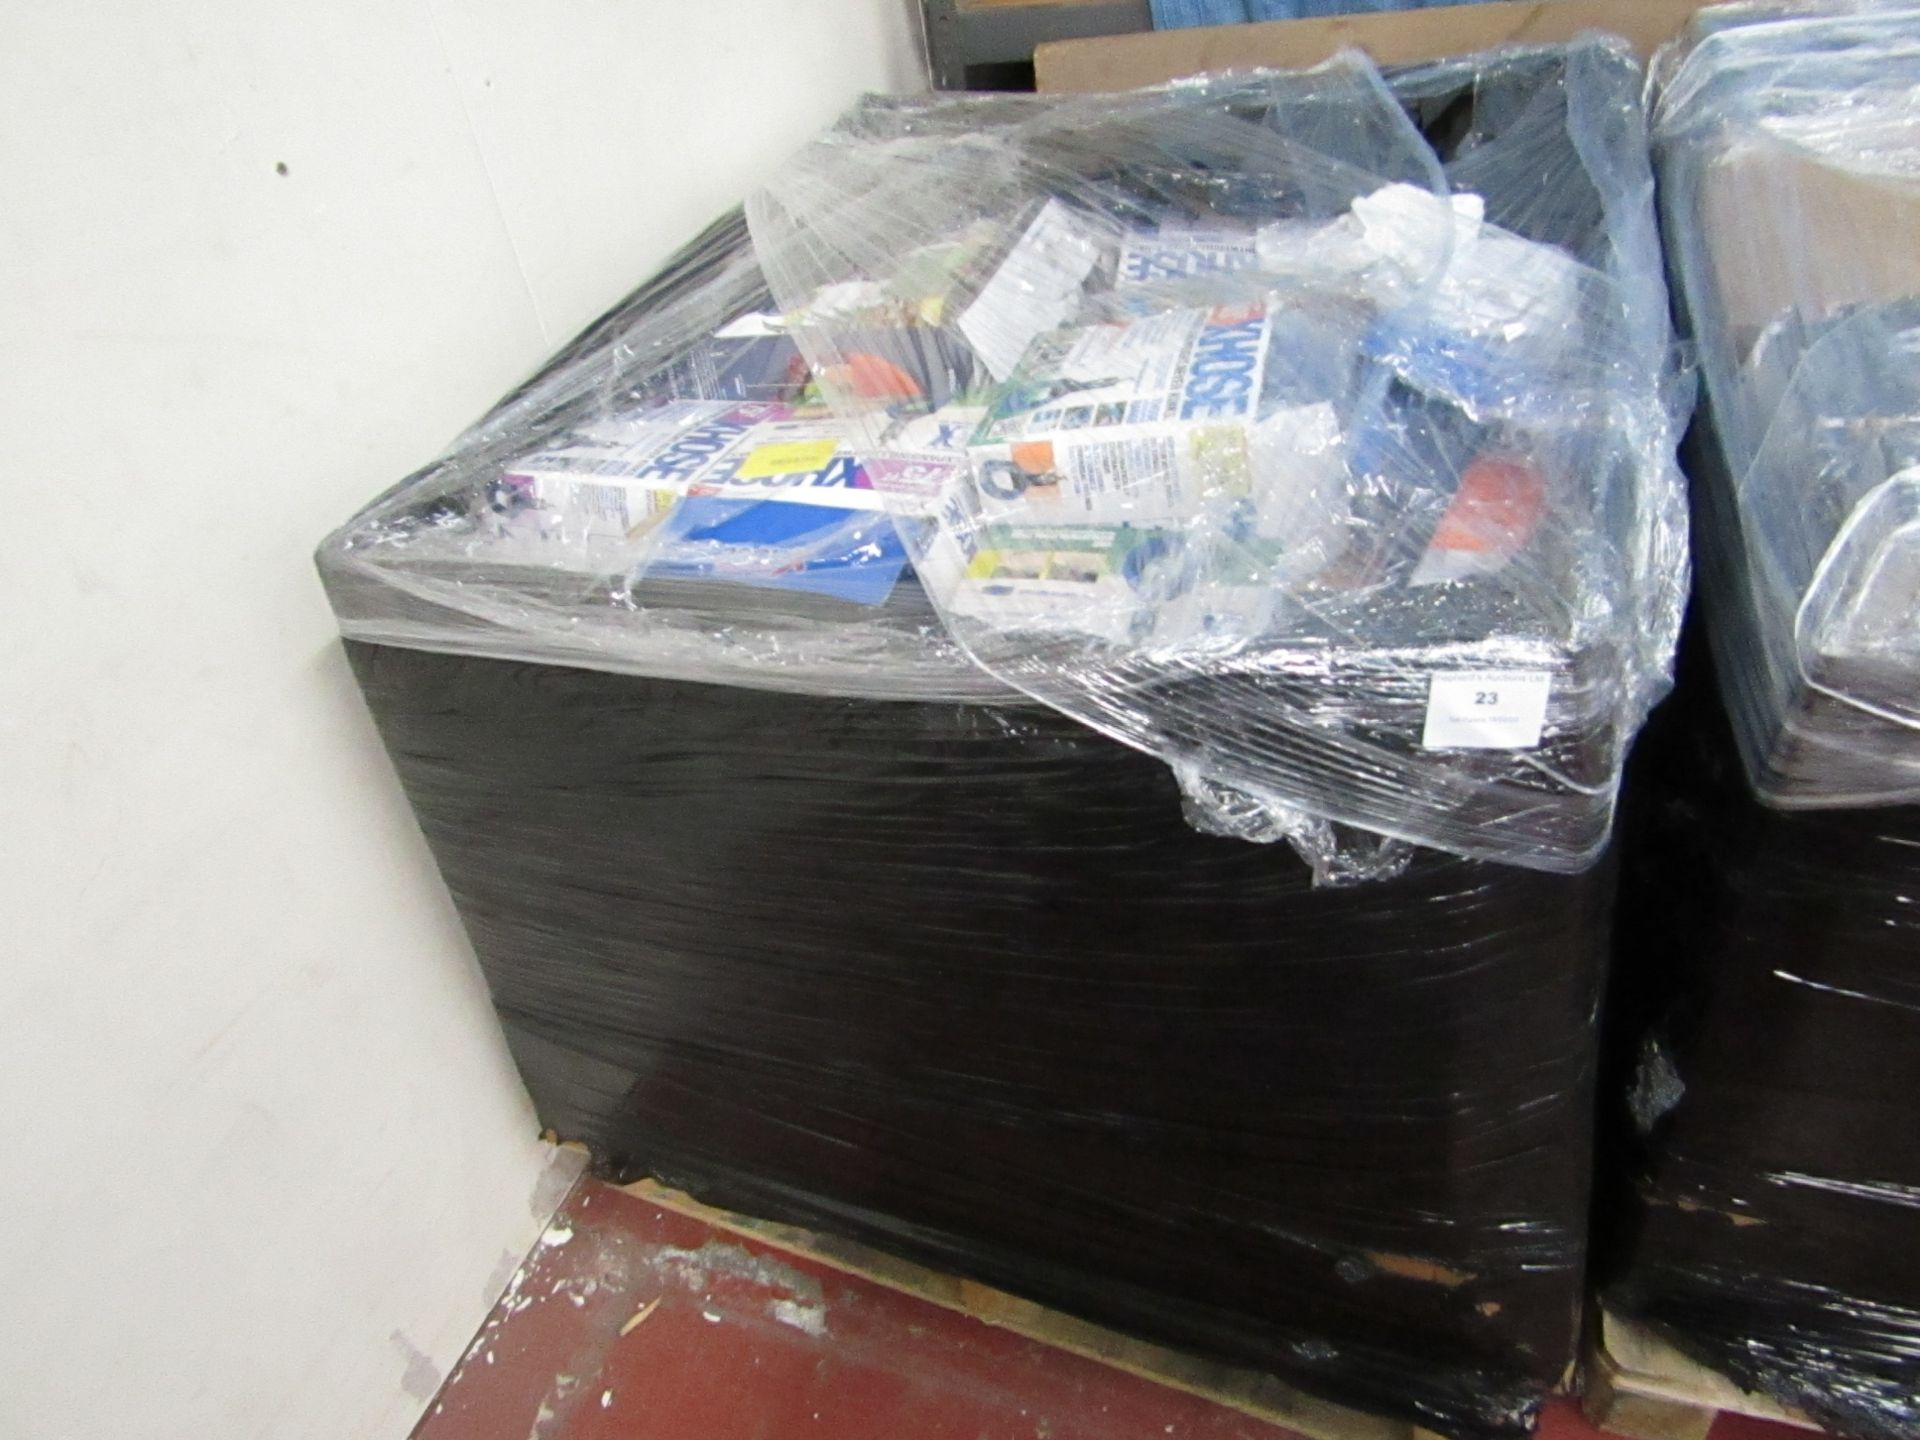 Lot 23 - | APPROX 37X | THE PALLET CONTAINS NUTRI BULLET, AIR FRYER XL'S AND MORE | BOXED AND UNCHECKED |